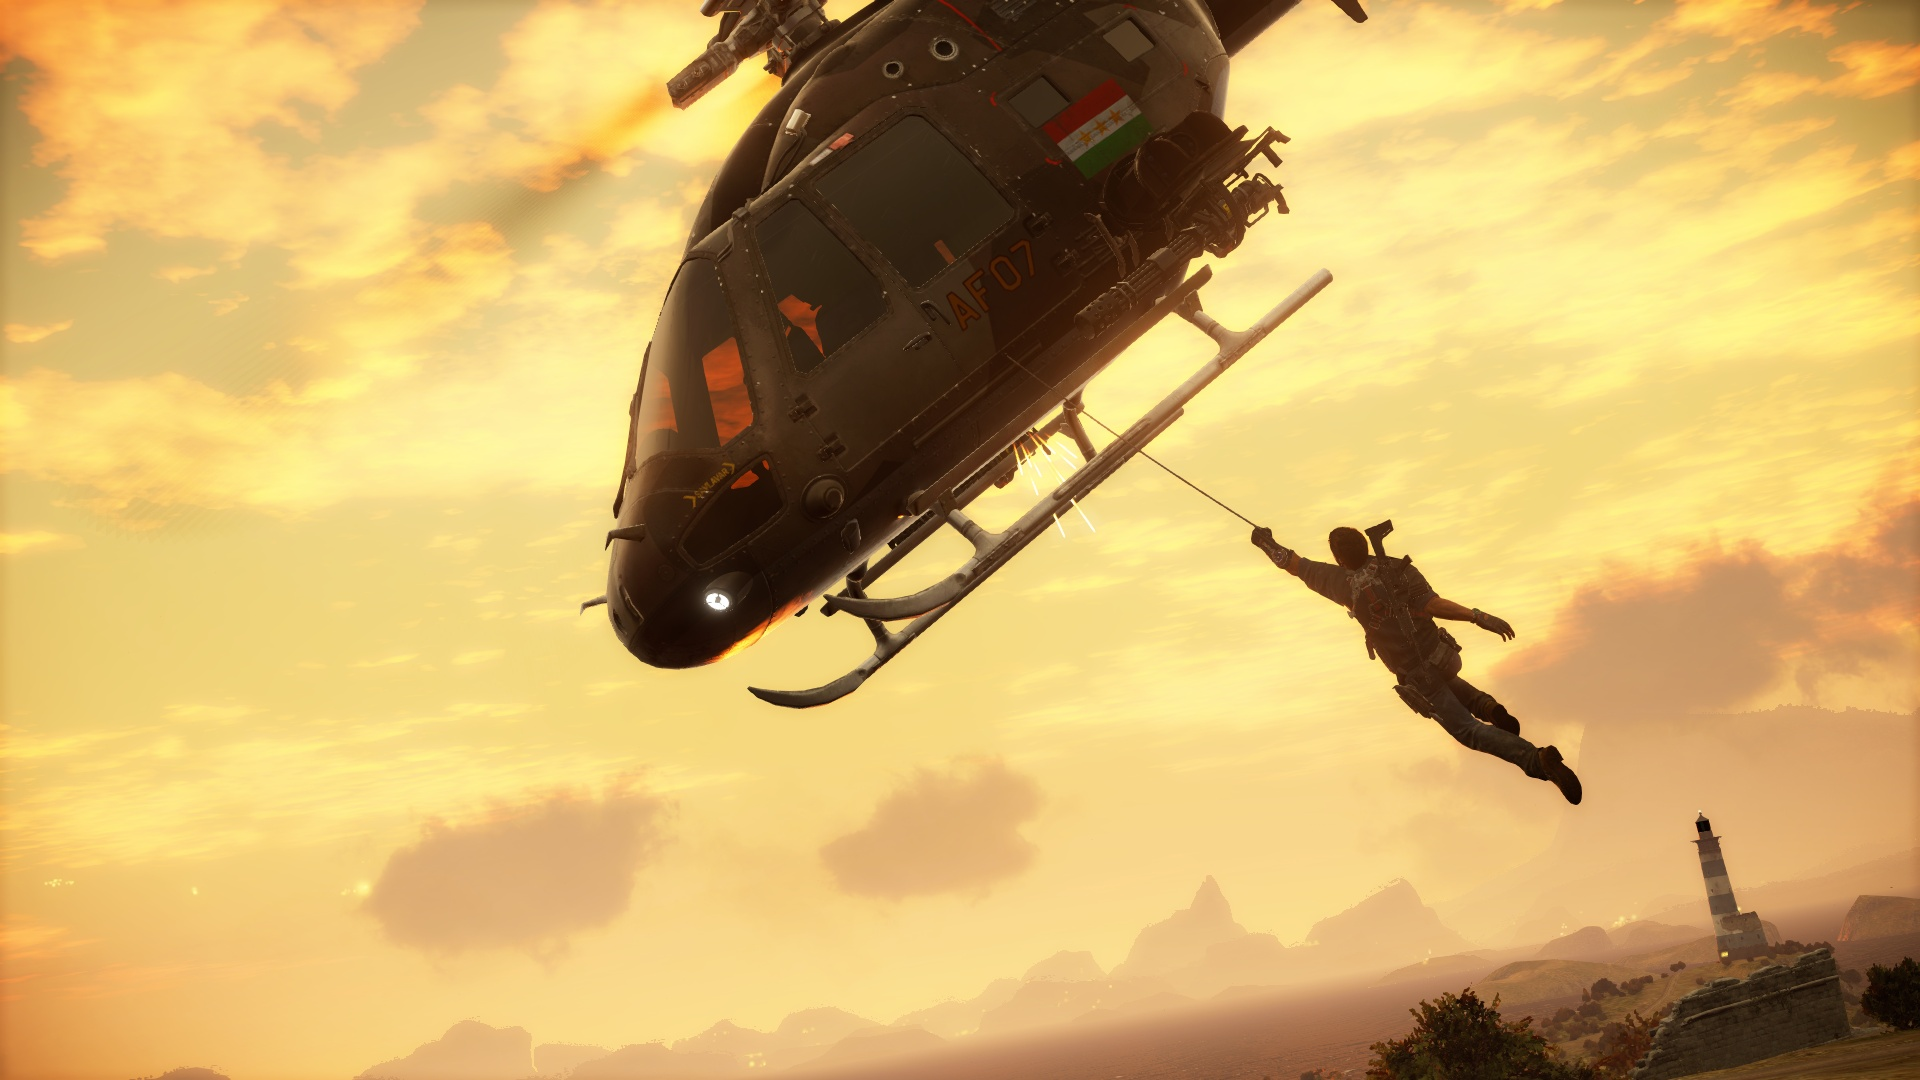 just-cause-3-screenshot-choppergrapple1-11-1418315492-12-2014